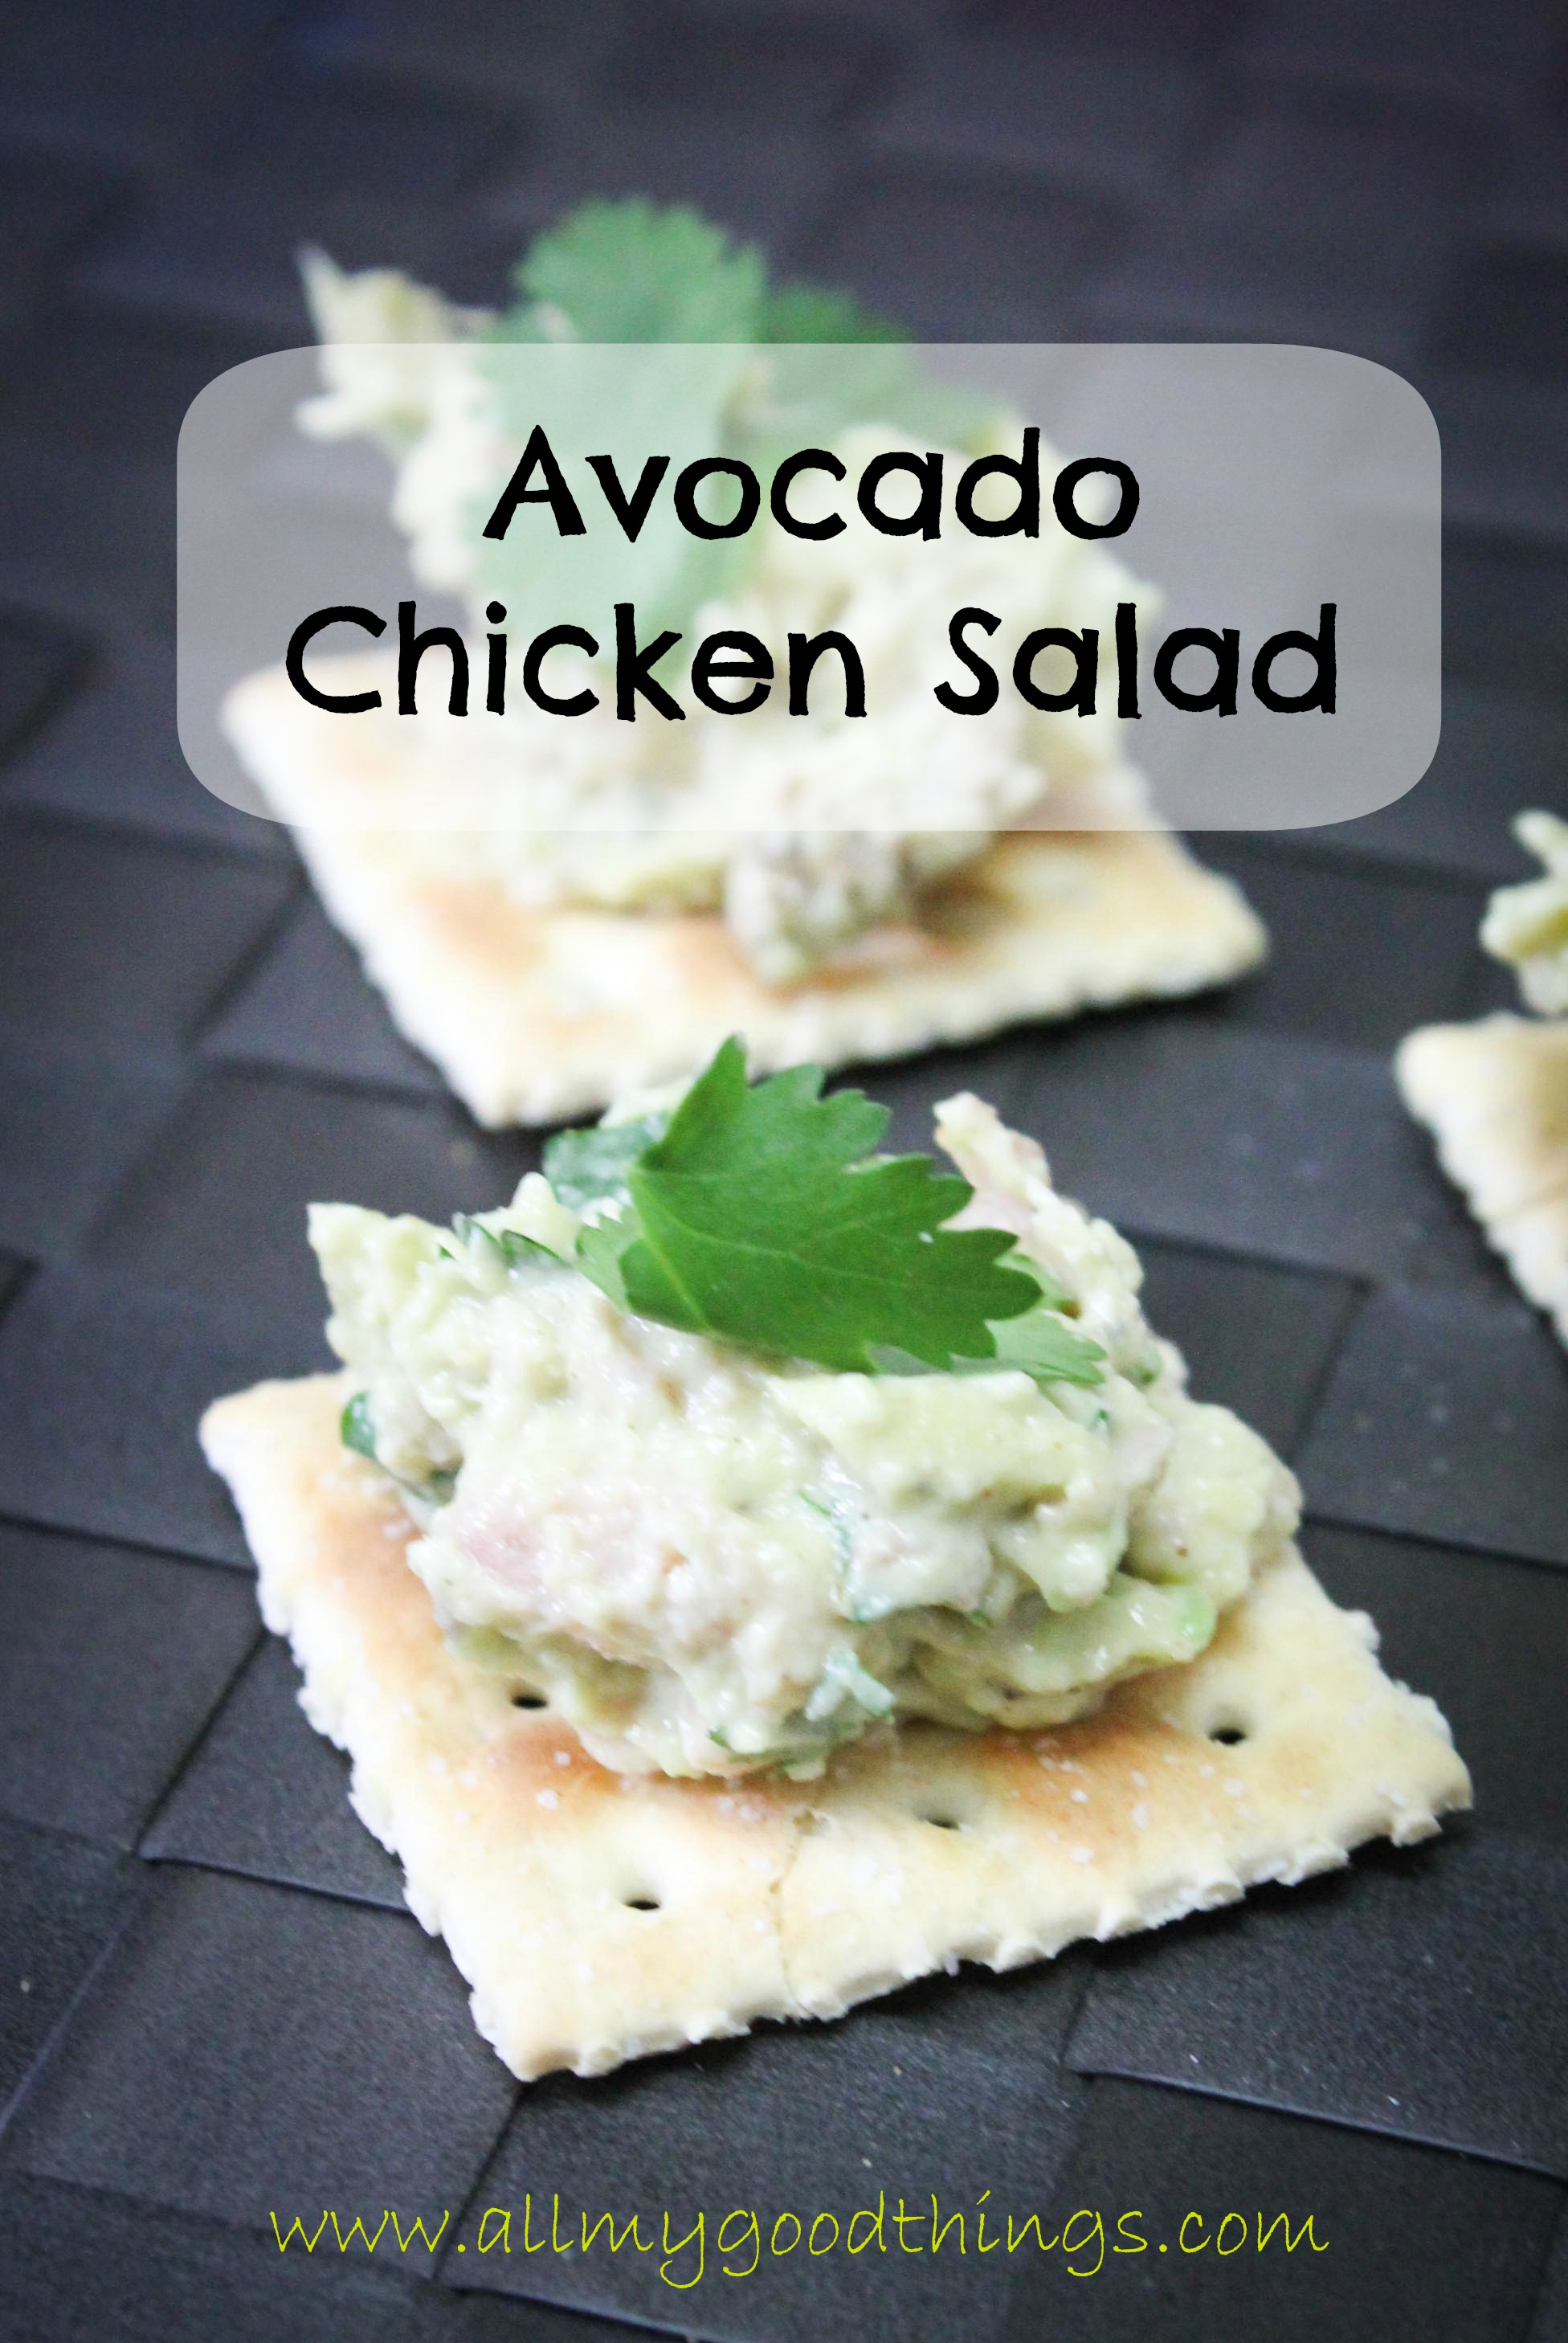 Avocado Chicken Salad - All My Good Things